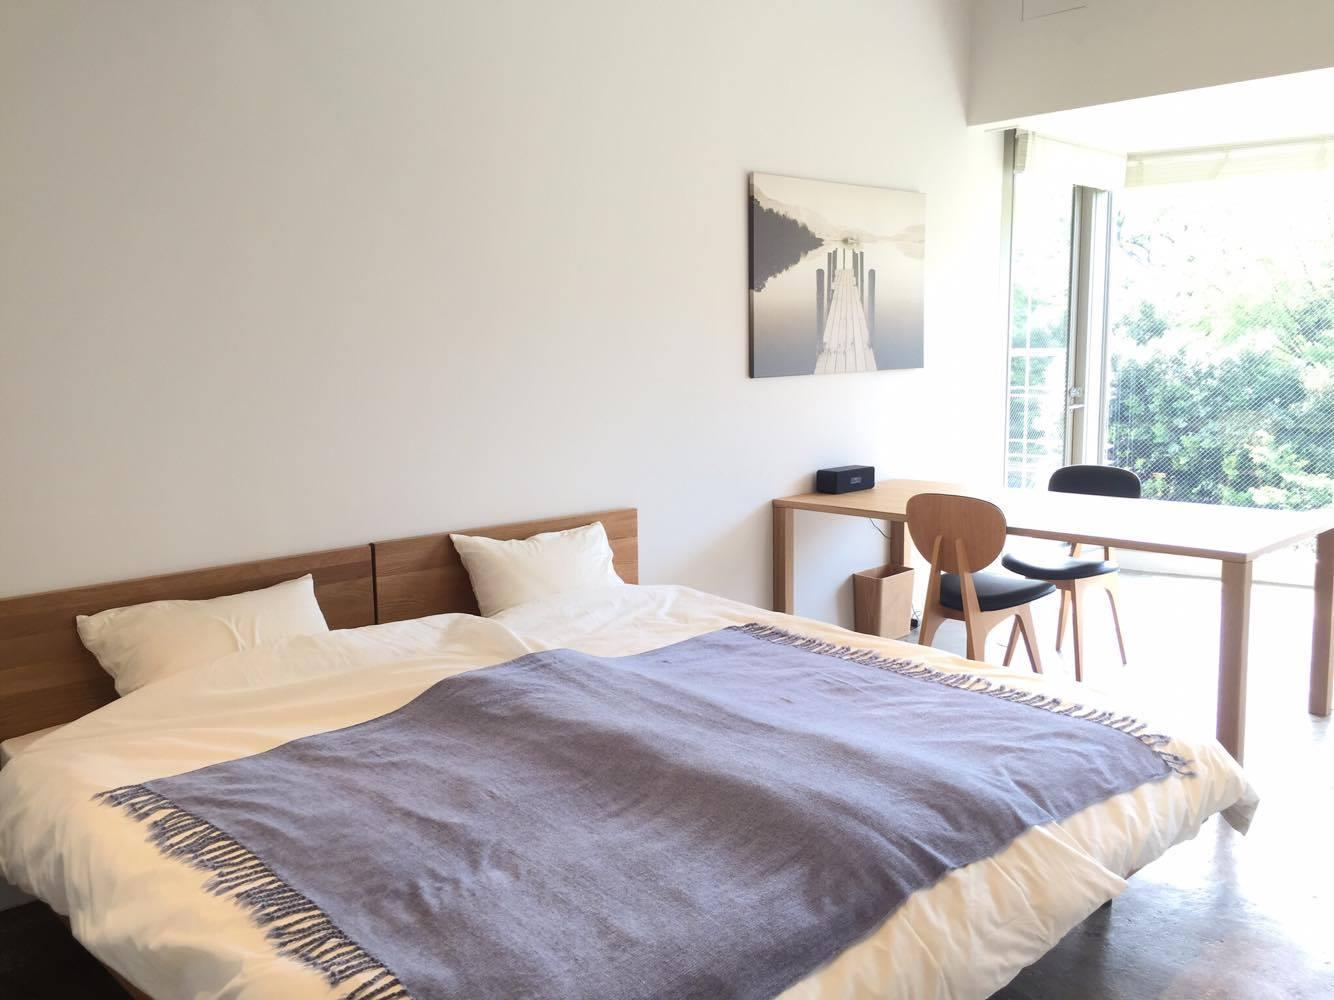 1R Serviced Apartment to Rent in Chiyoda ku